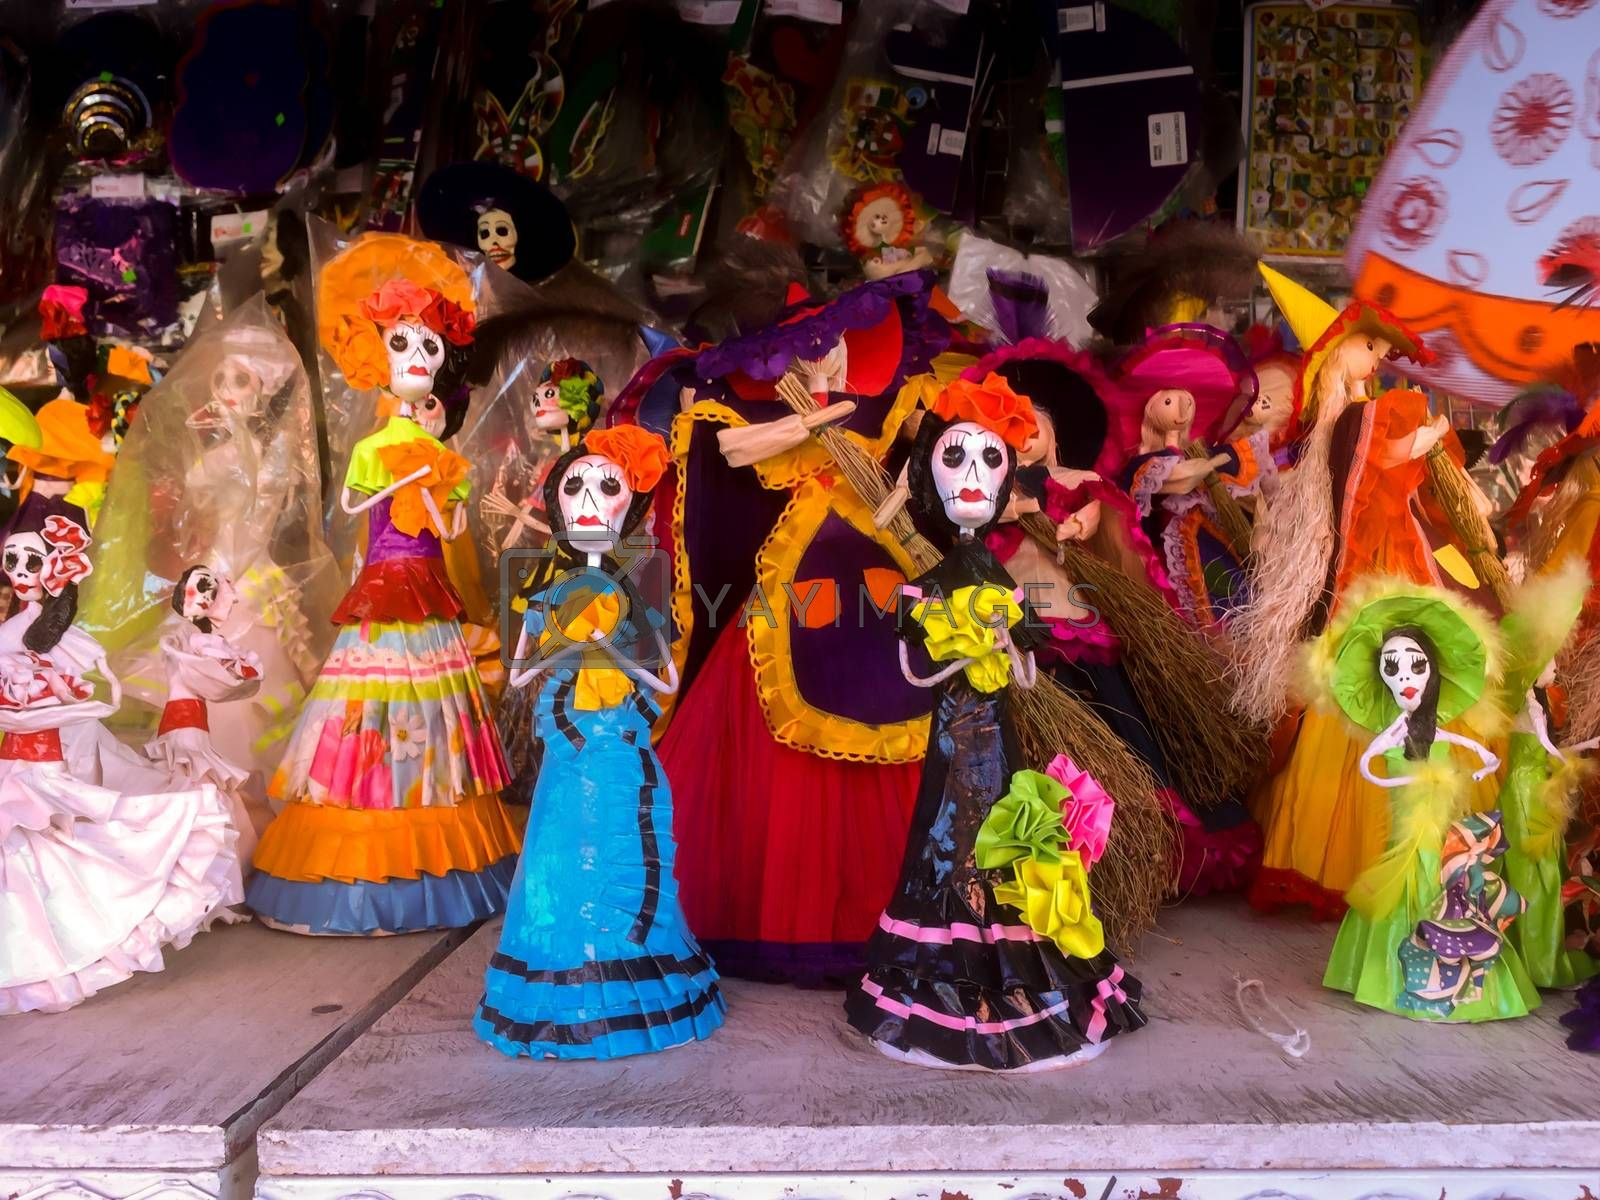 Papier mache figurines of La Catrina, evocative of Mexican culture and the Day of the Dead celebrations, make popular ornaments during the halloween and Dia de Muertos holidays